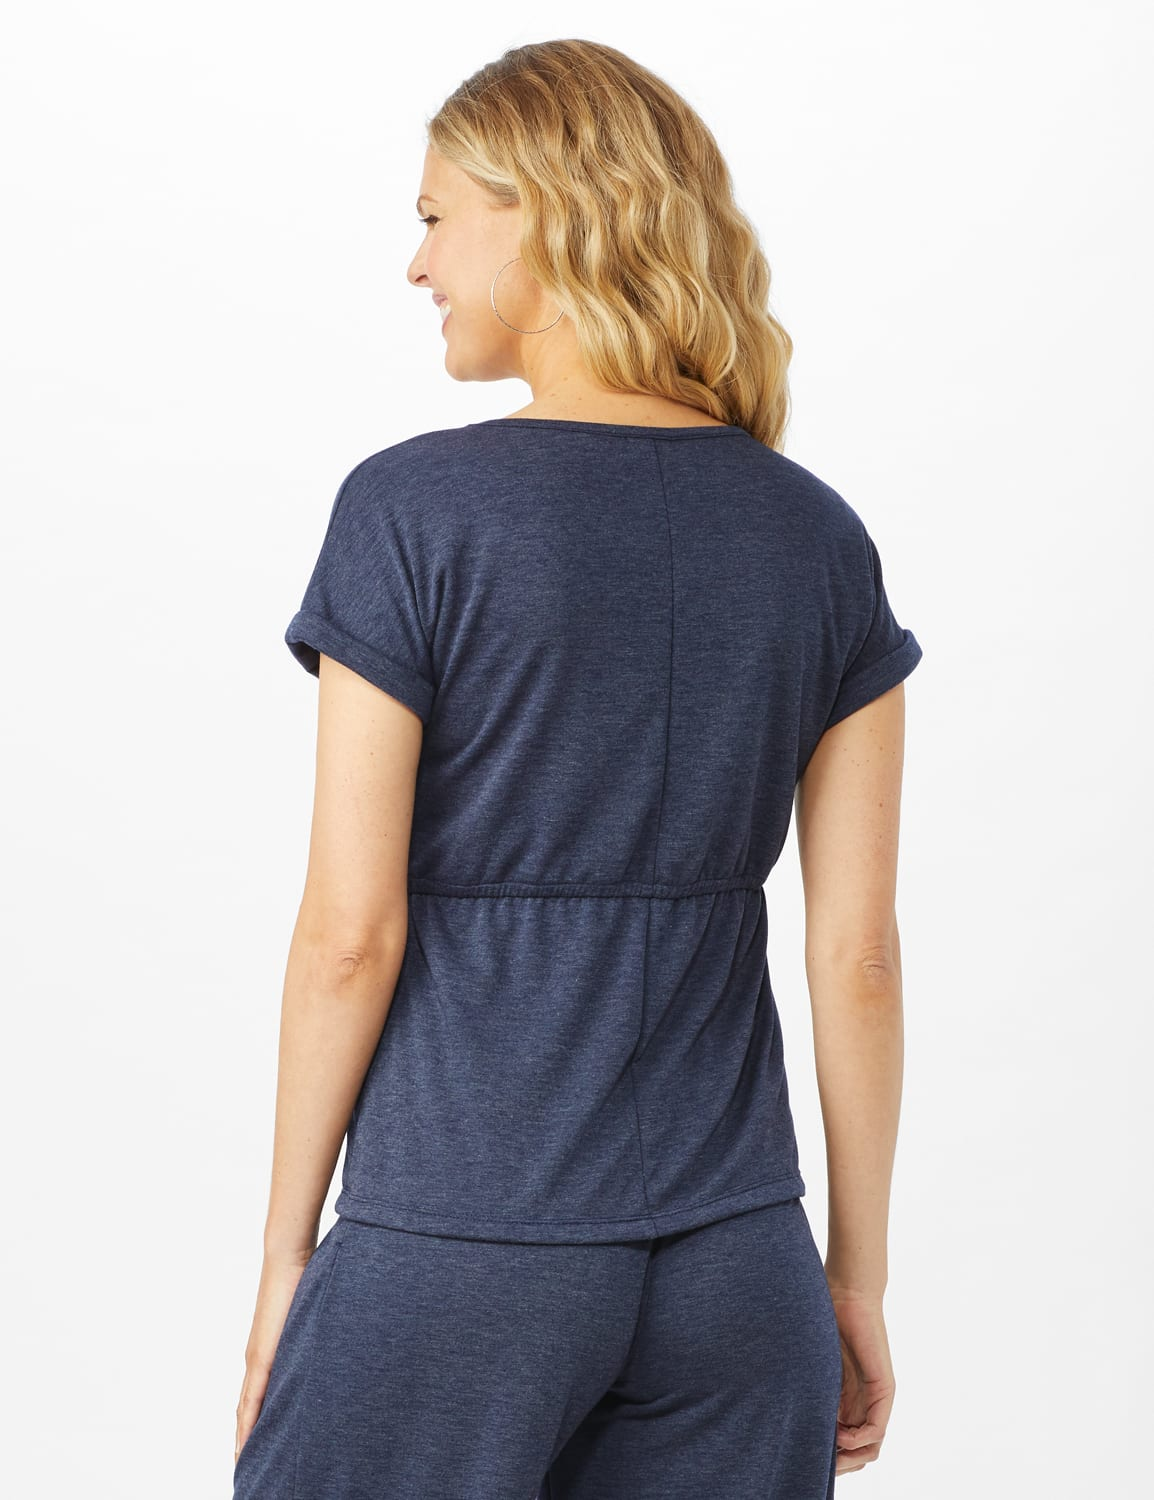 Cinch Waist Heathered Knit Top - Misses - Blue - Back